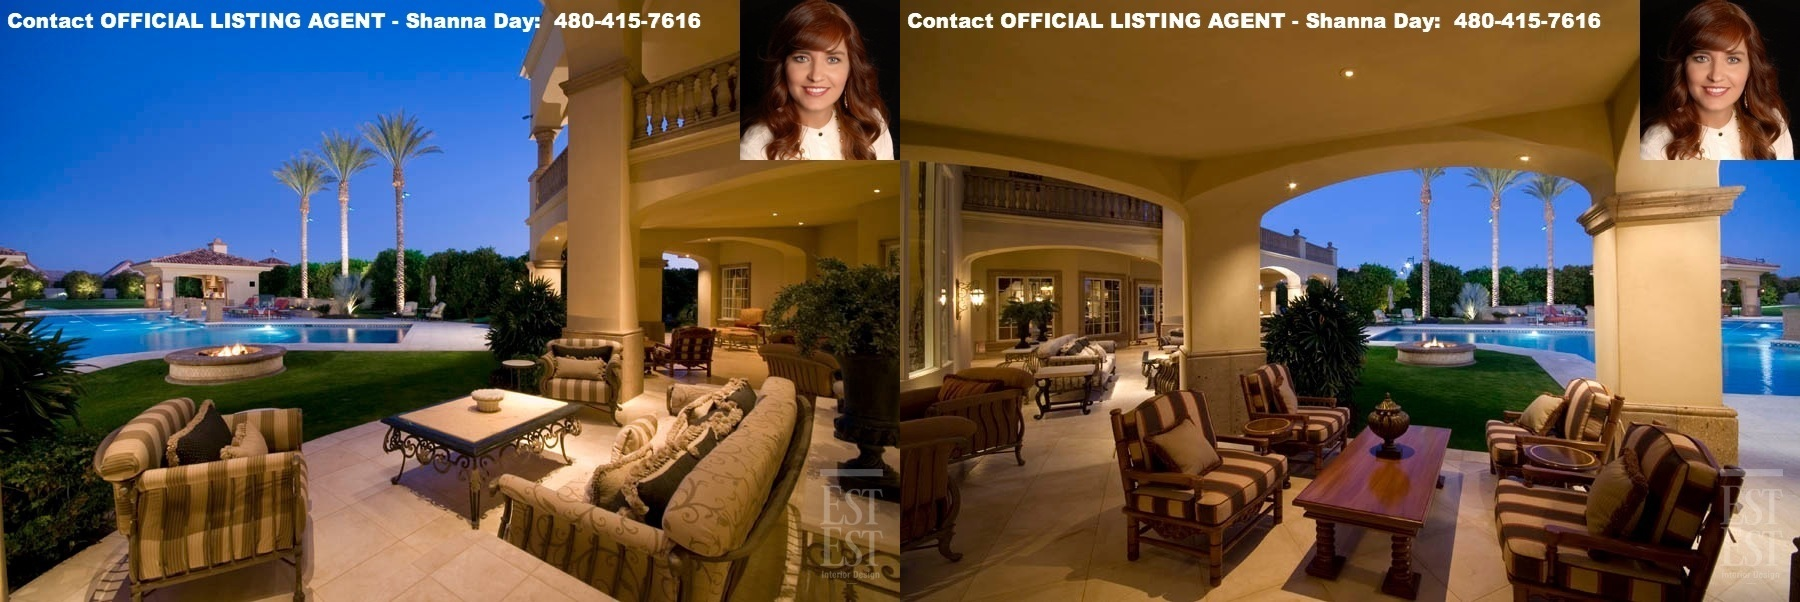 palatial 5 bed luxury home 1 bed guest home in mesa az citrus